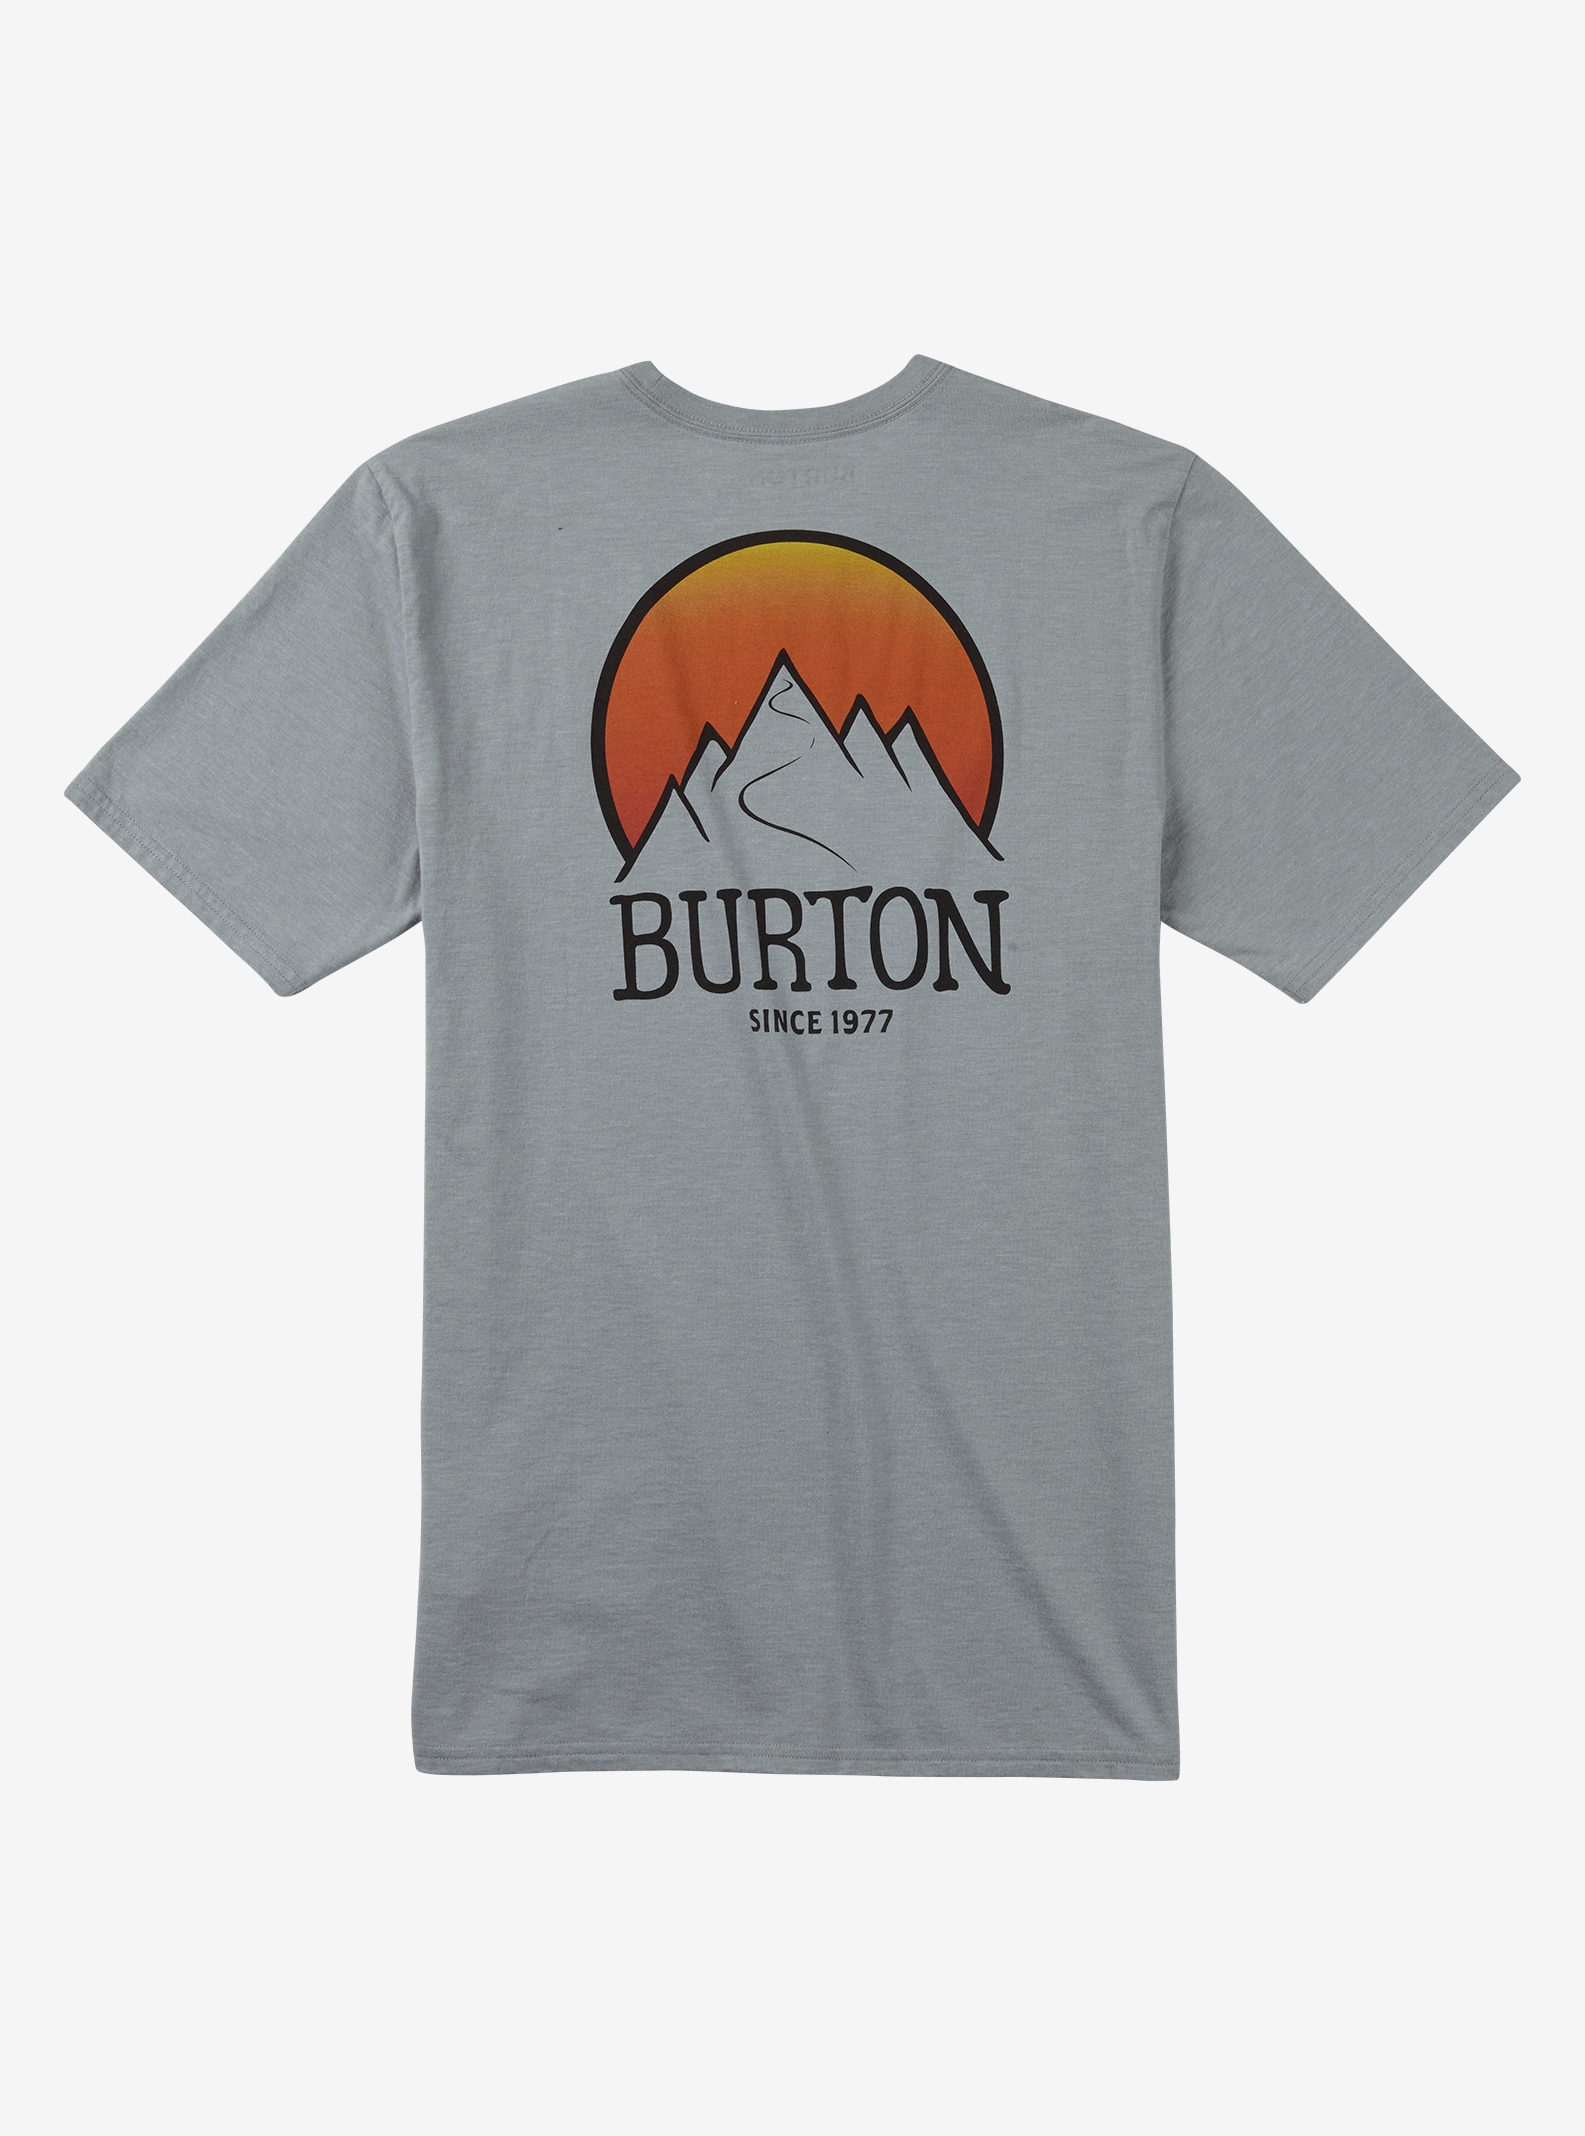 Burton Vista Short Sleeve T Shirt shown in Gray Heather